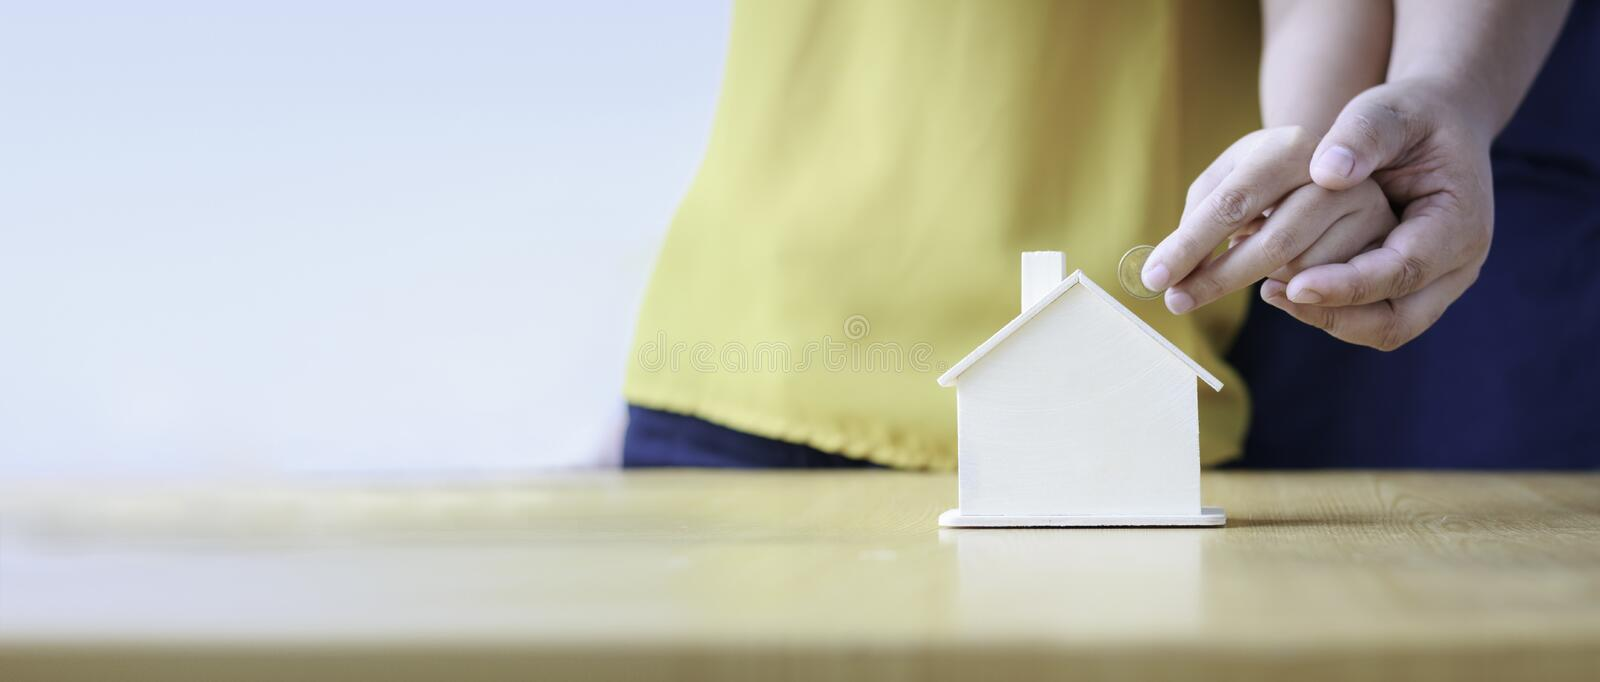 Close up shot hands of man and woman putting the coin to house p royalty free stock image